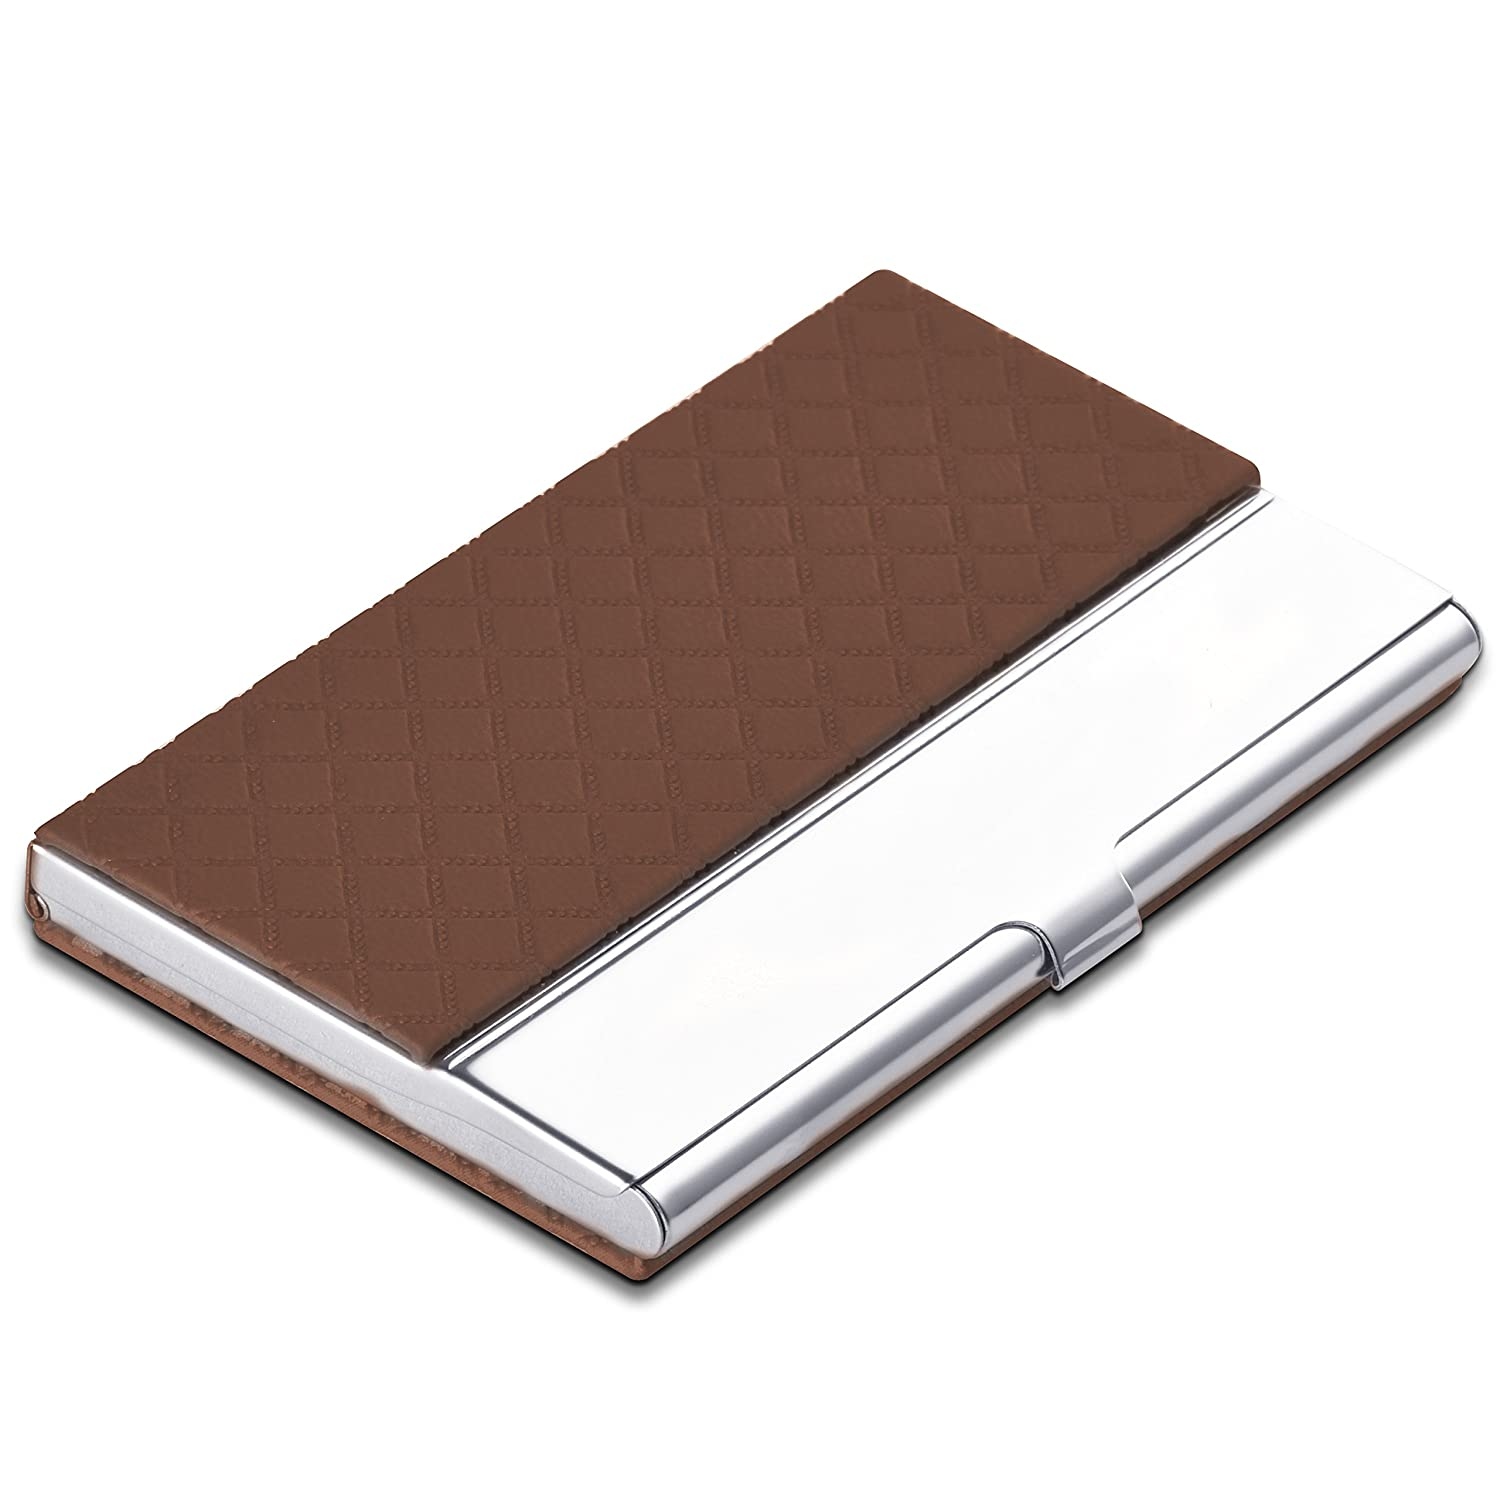 6 Colors Personalized Stainless Steel Credit Business Card Case Holder Engraved with Custom Text Yellow